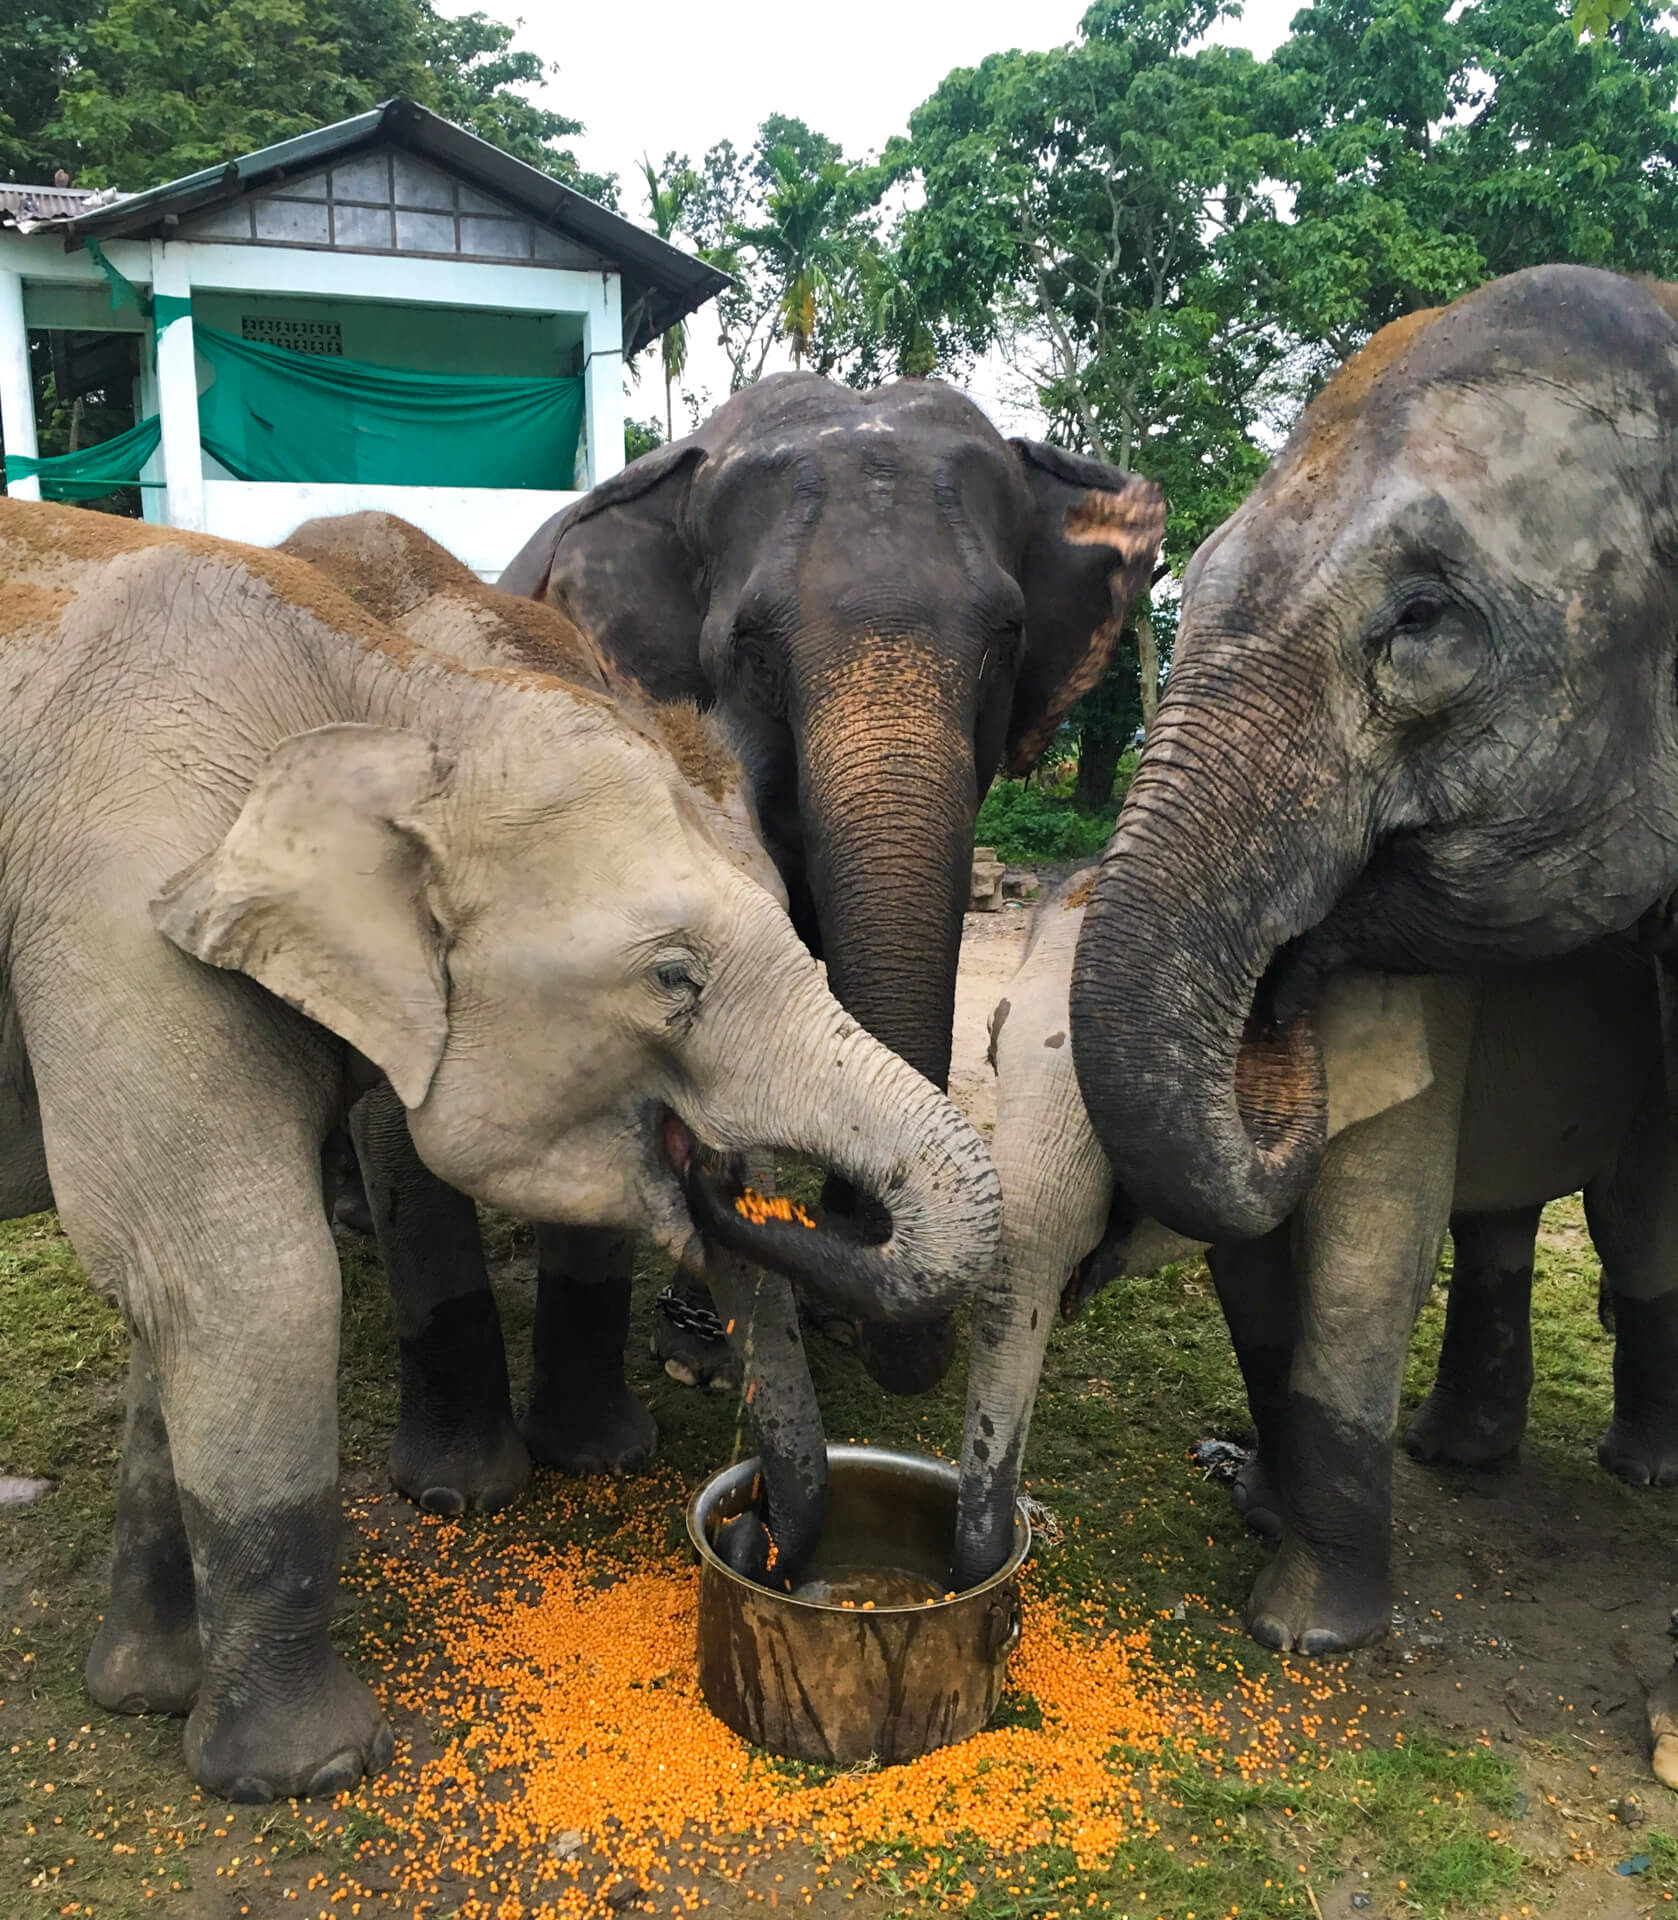 Three elephants eating food from a metal pot.